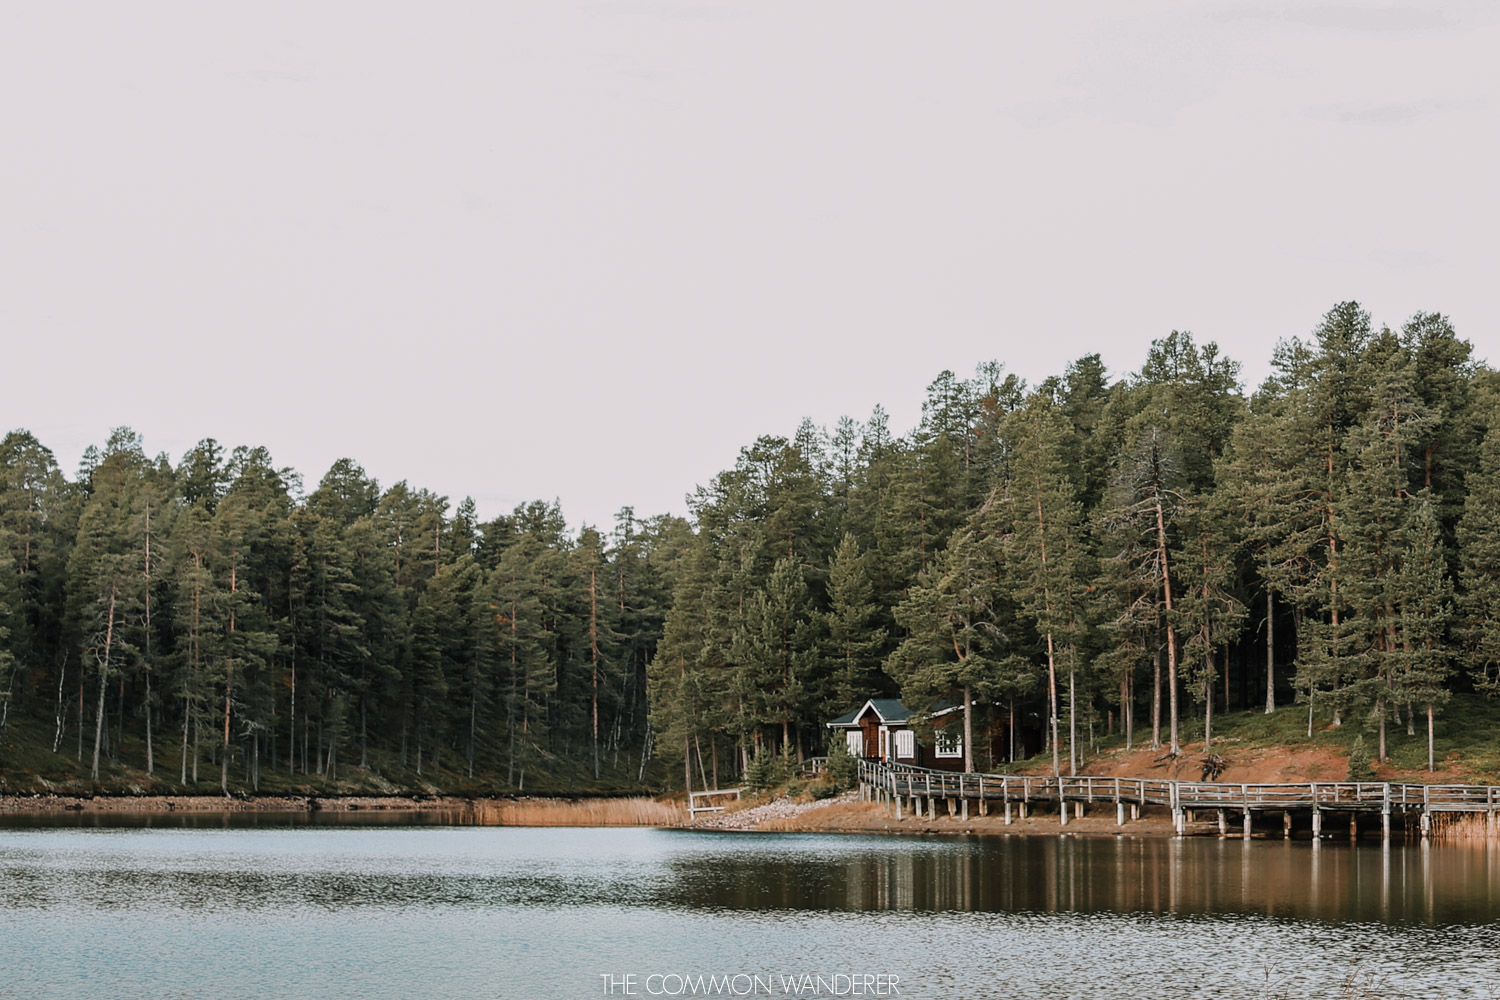 Lapland Pictures: cabin by the lake in Arjeplog, swedish lapland